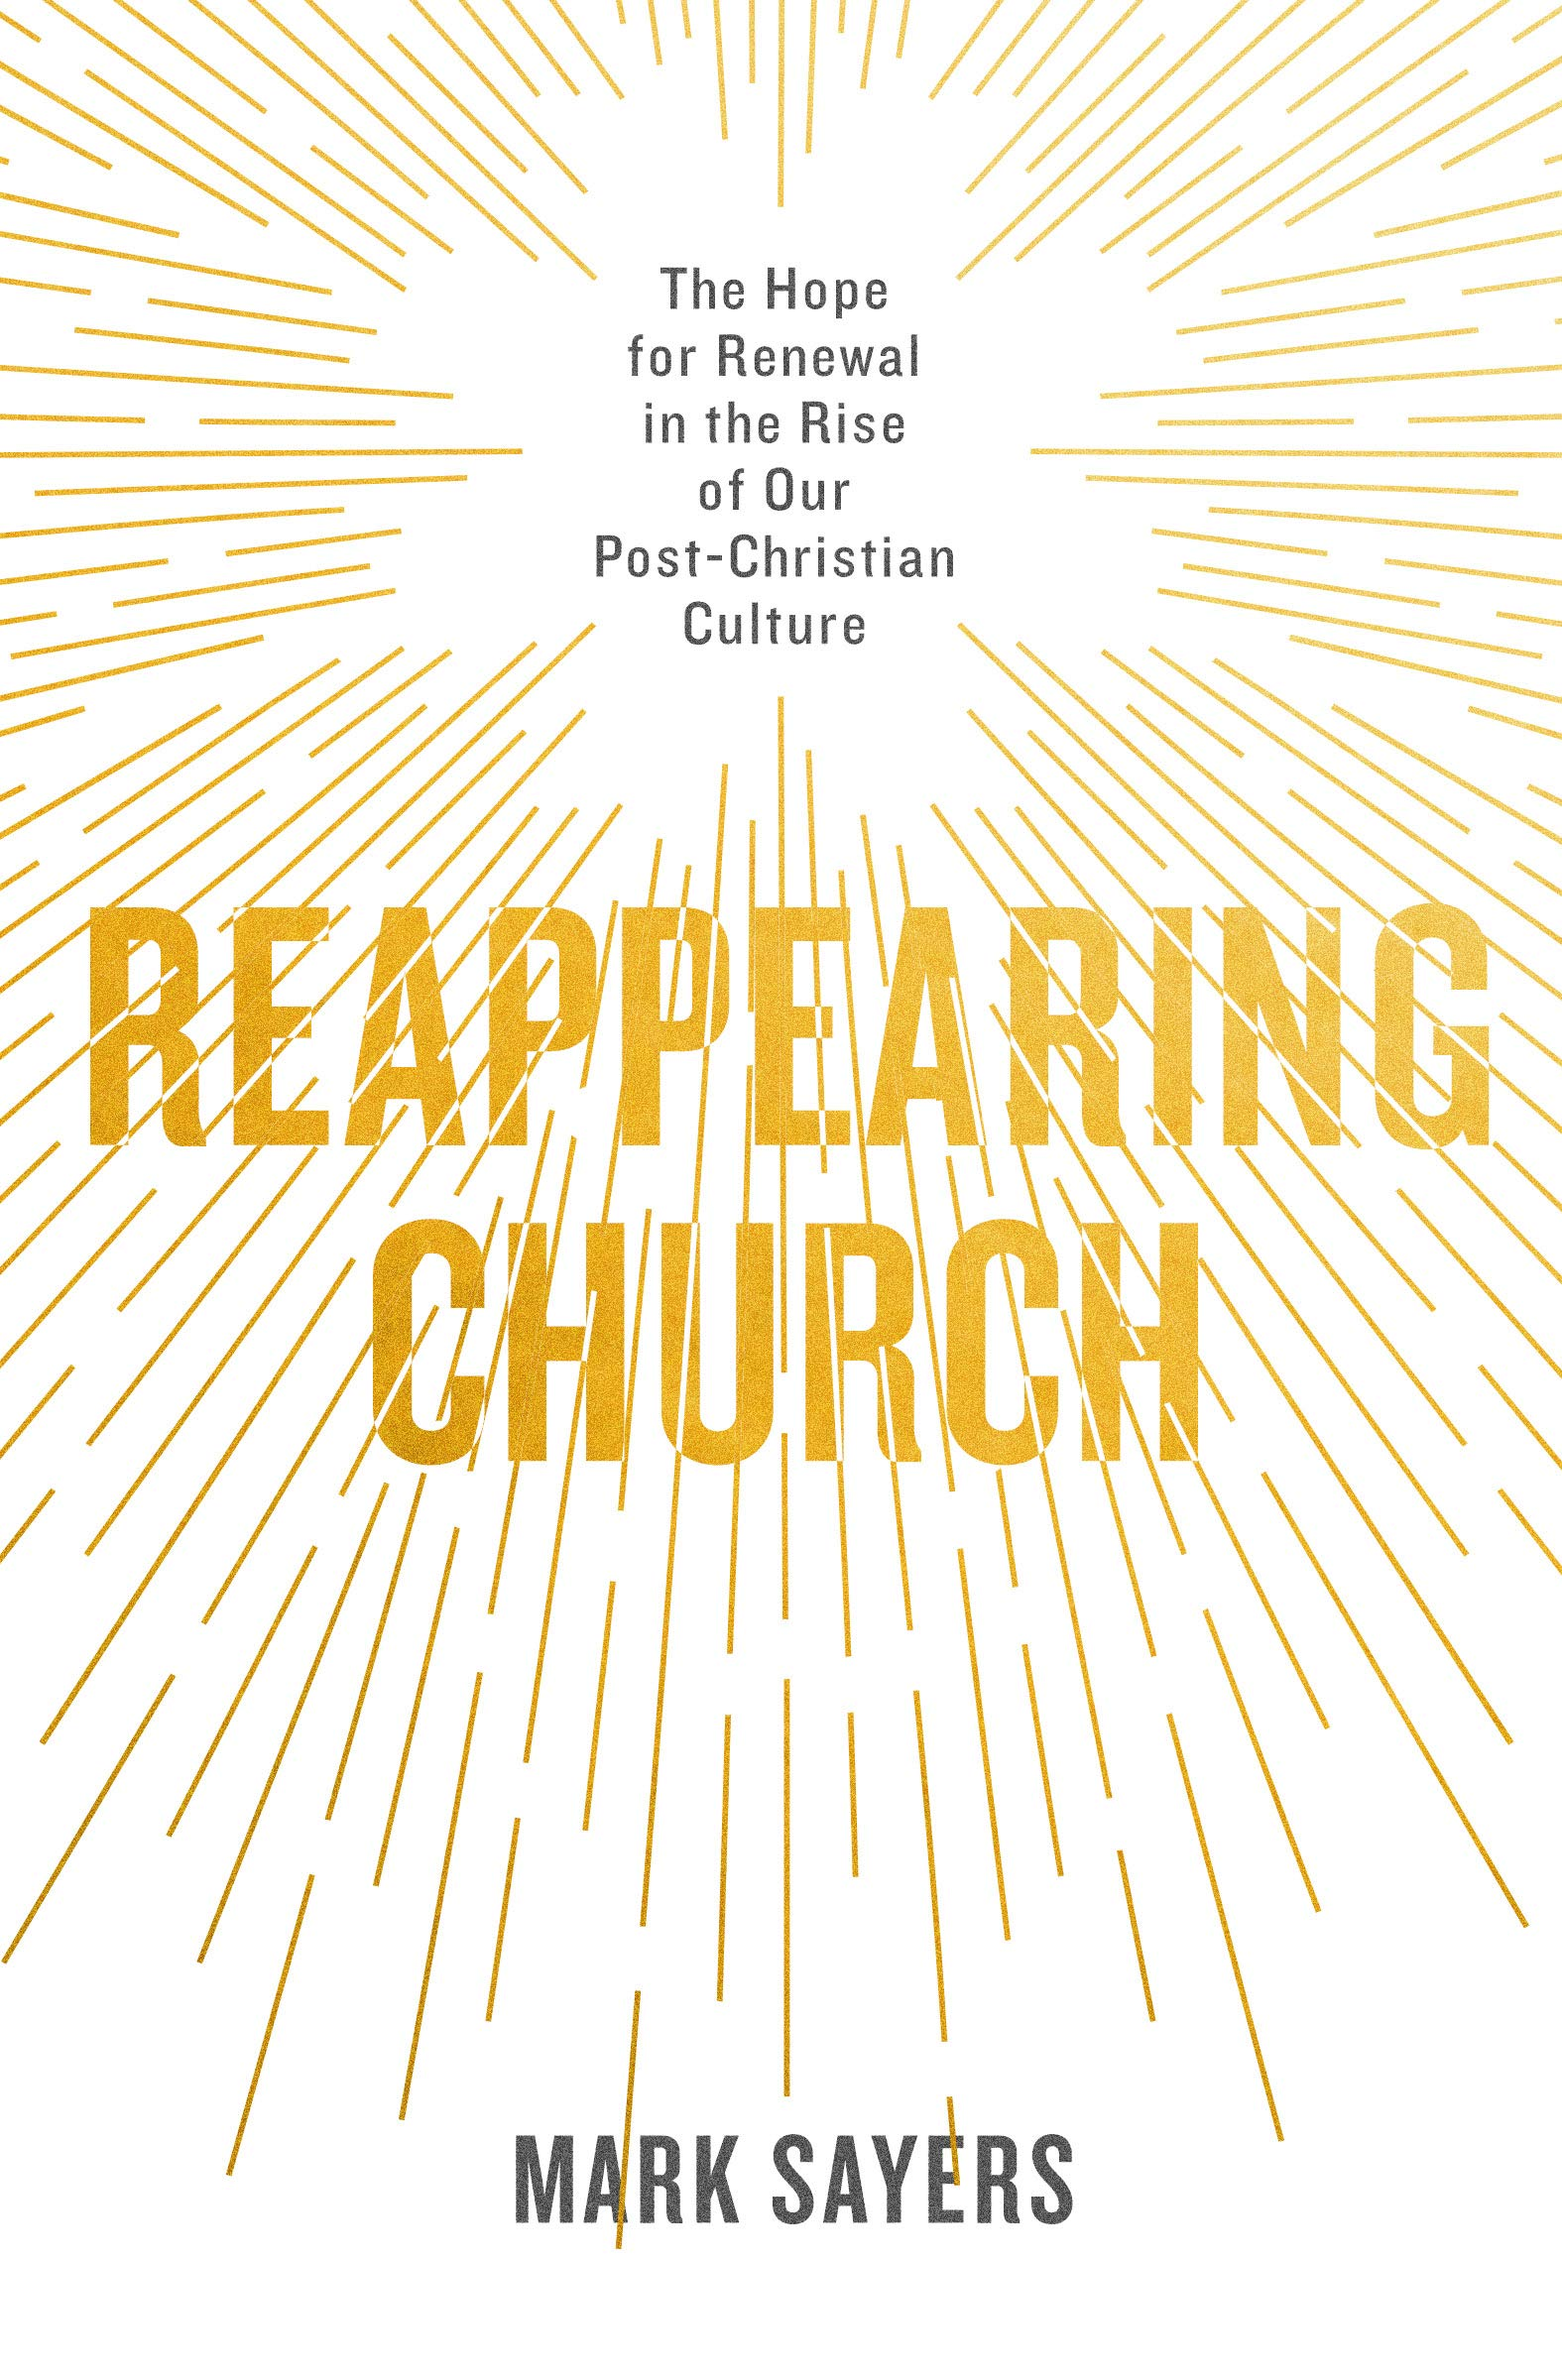 Reappearing Church: The Hope for Renewal in the Rise of Our Post-Christian Culture